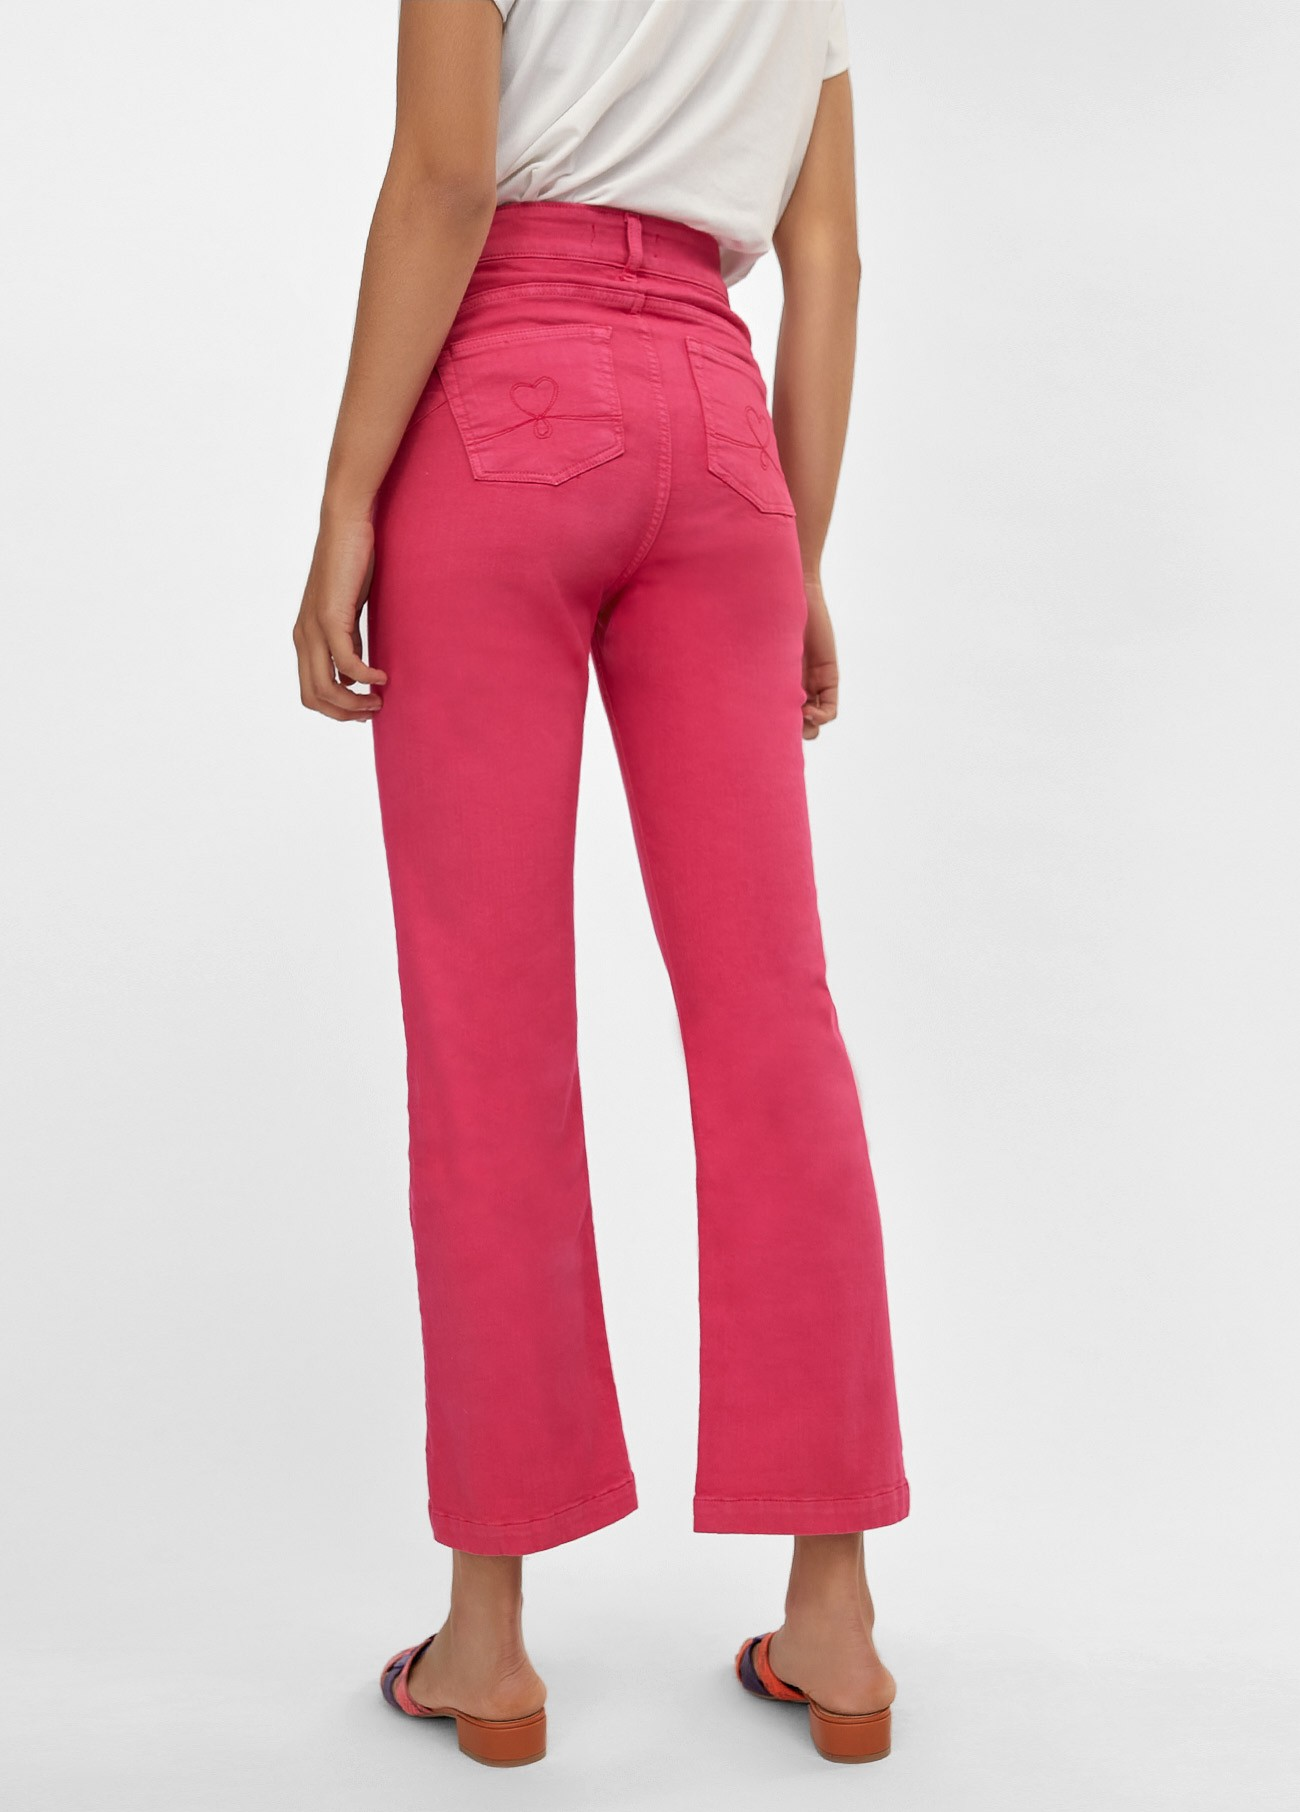 Pantalon 5 bolsillos color